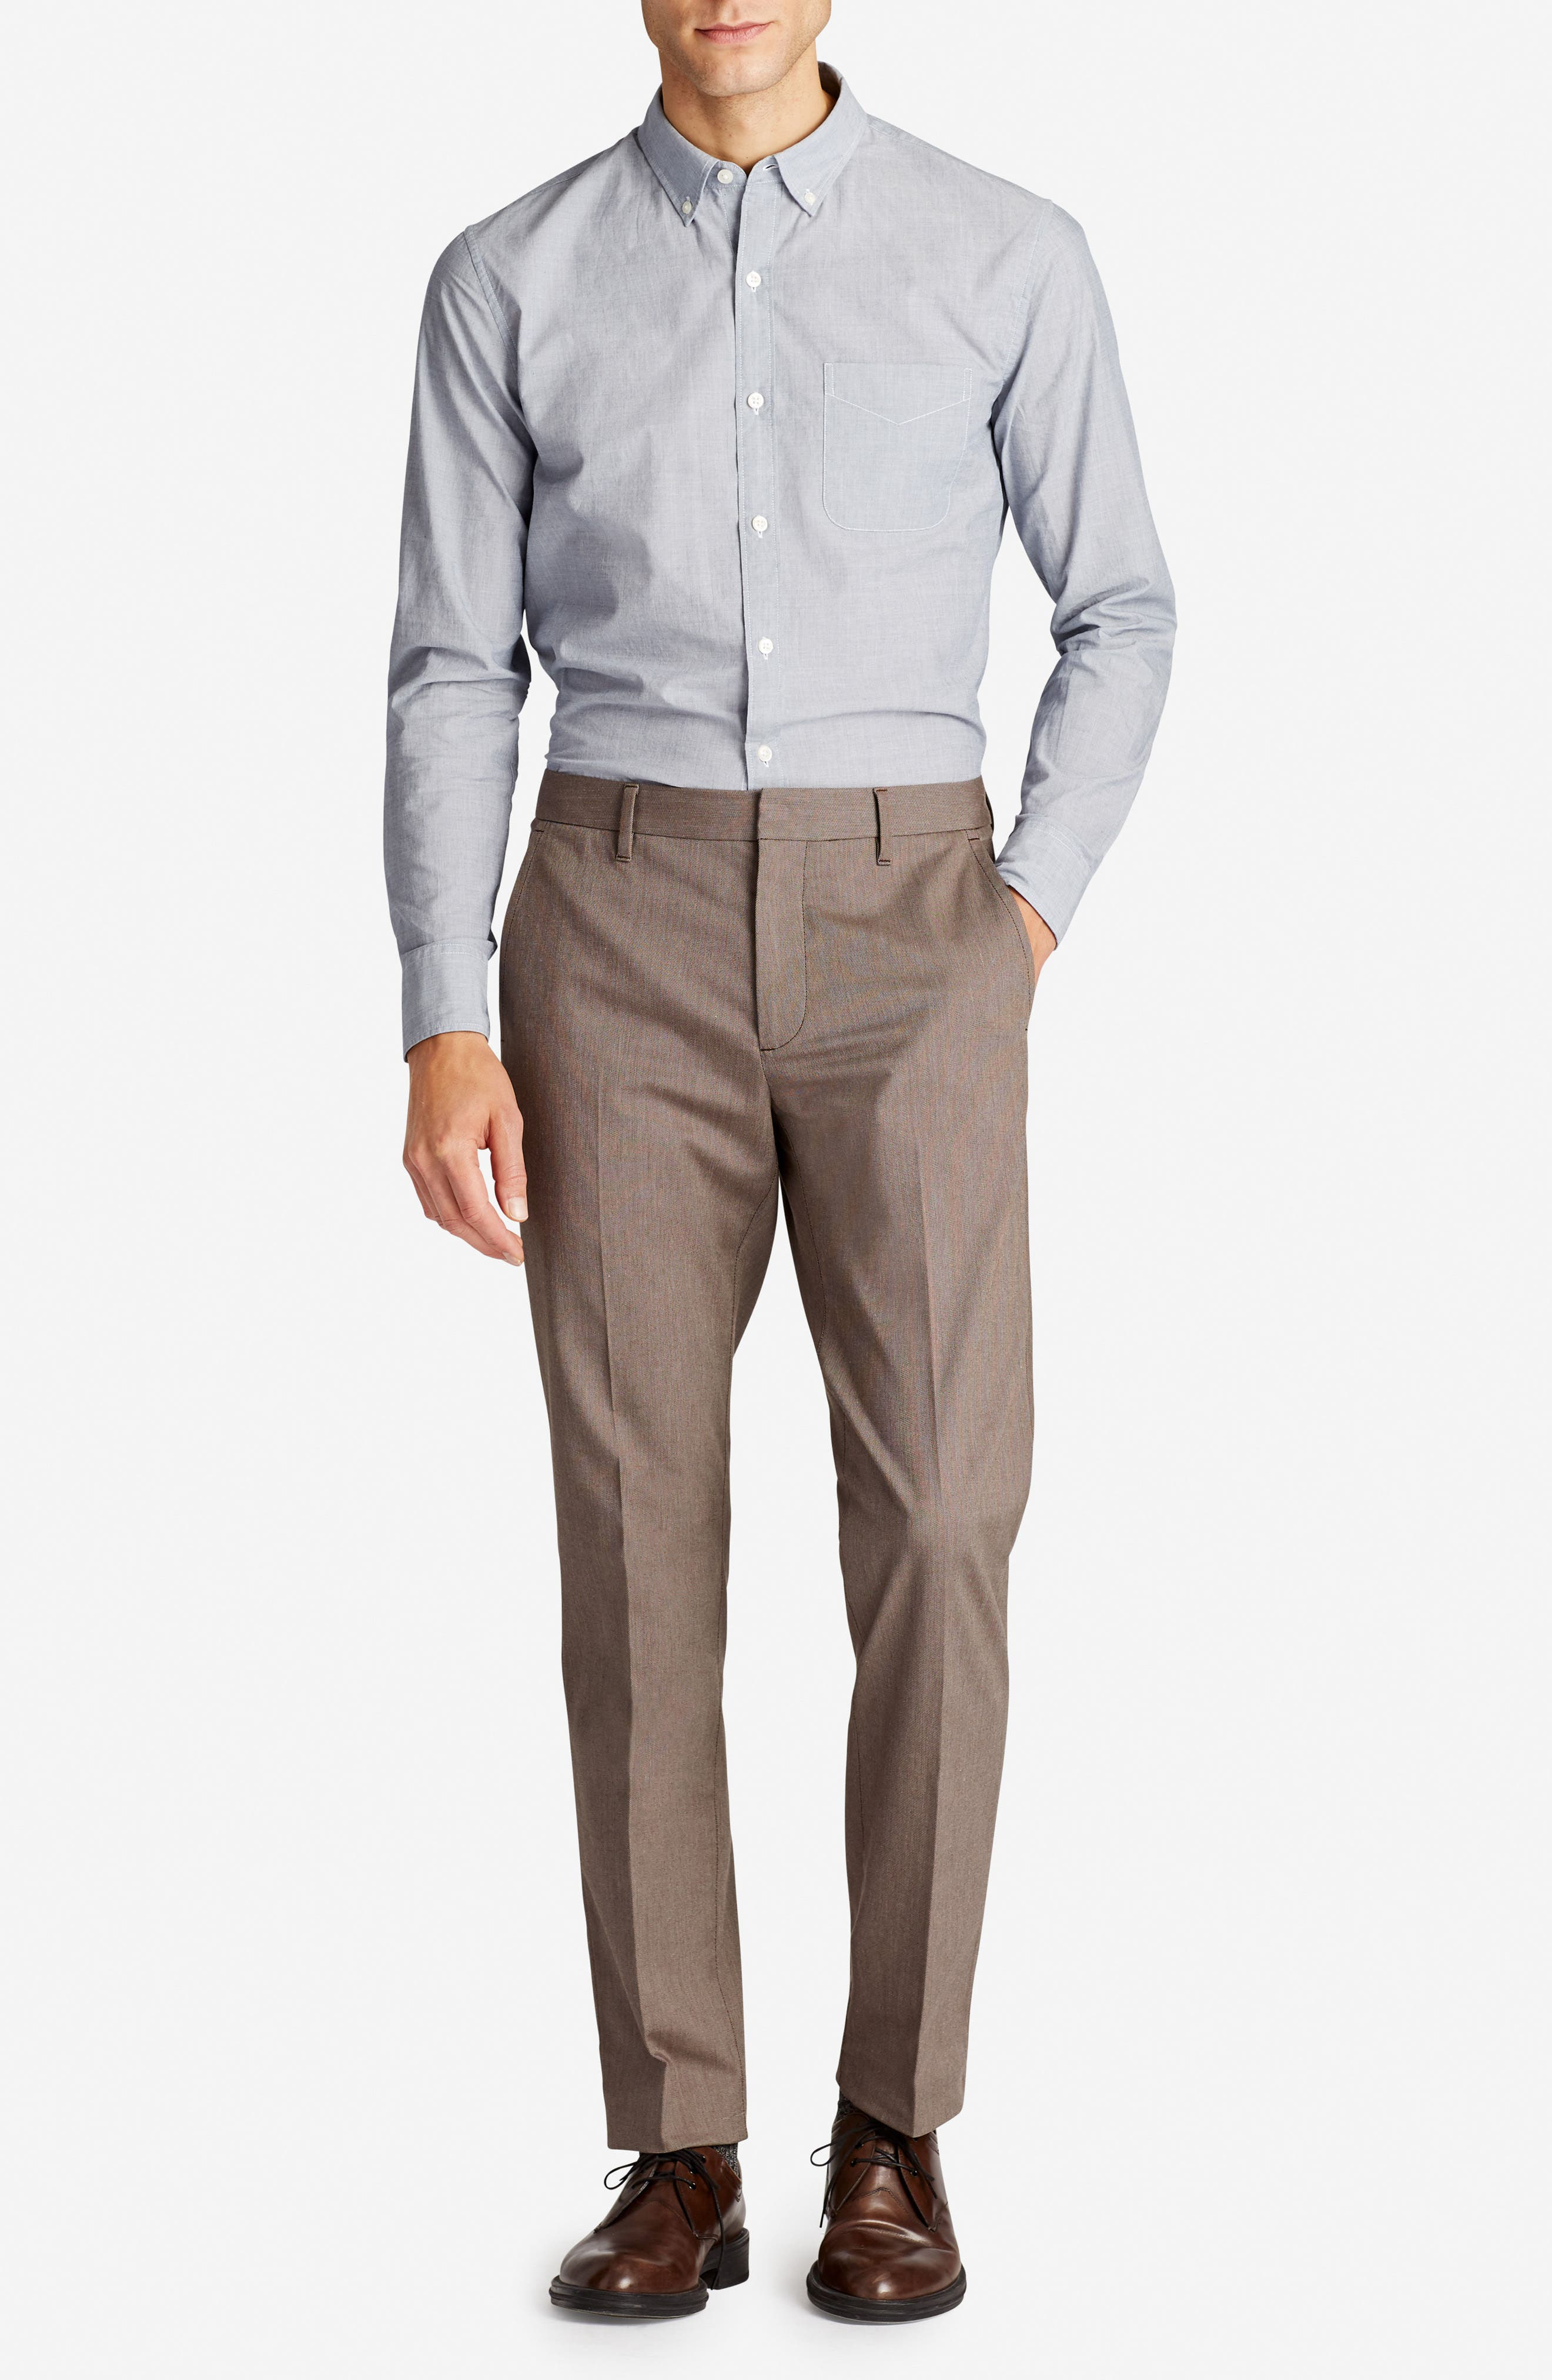 Weekday Warrior Flat Front Stretch Cotton Pants,                             Alternate thumbnail 8, color,                             200